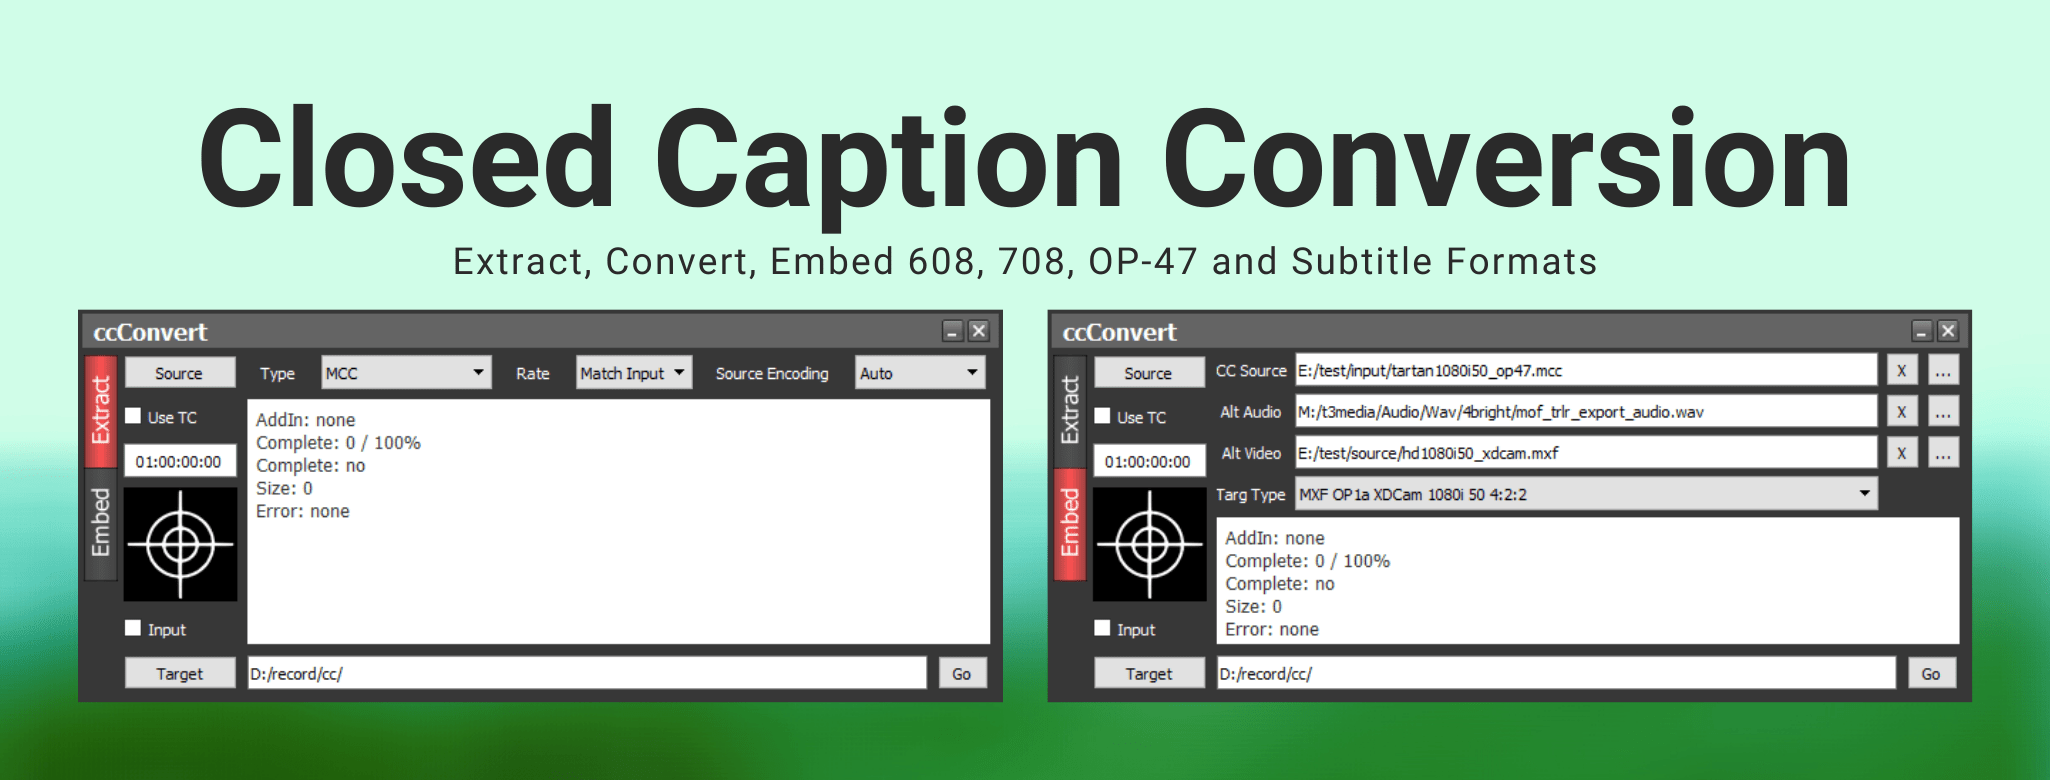 ccConvert closed captions conversion, 608, 708, op47, subtitles